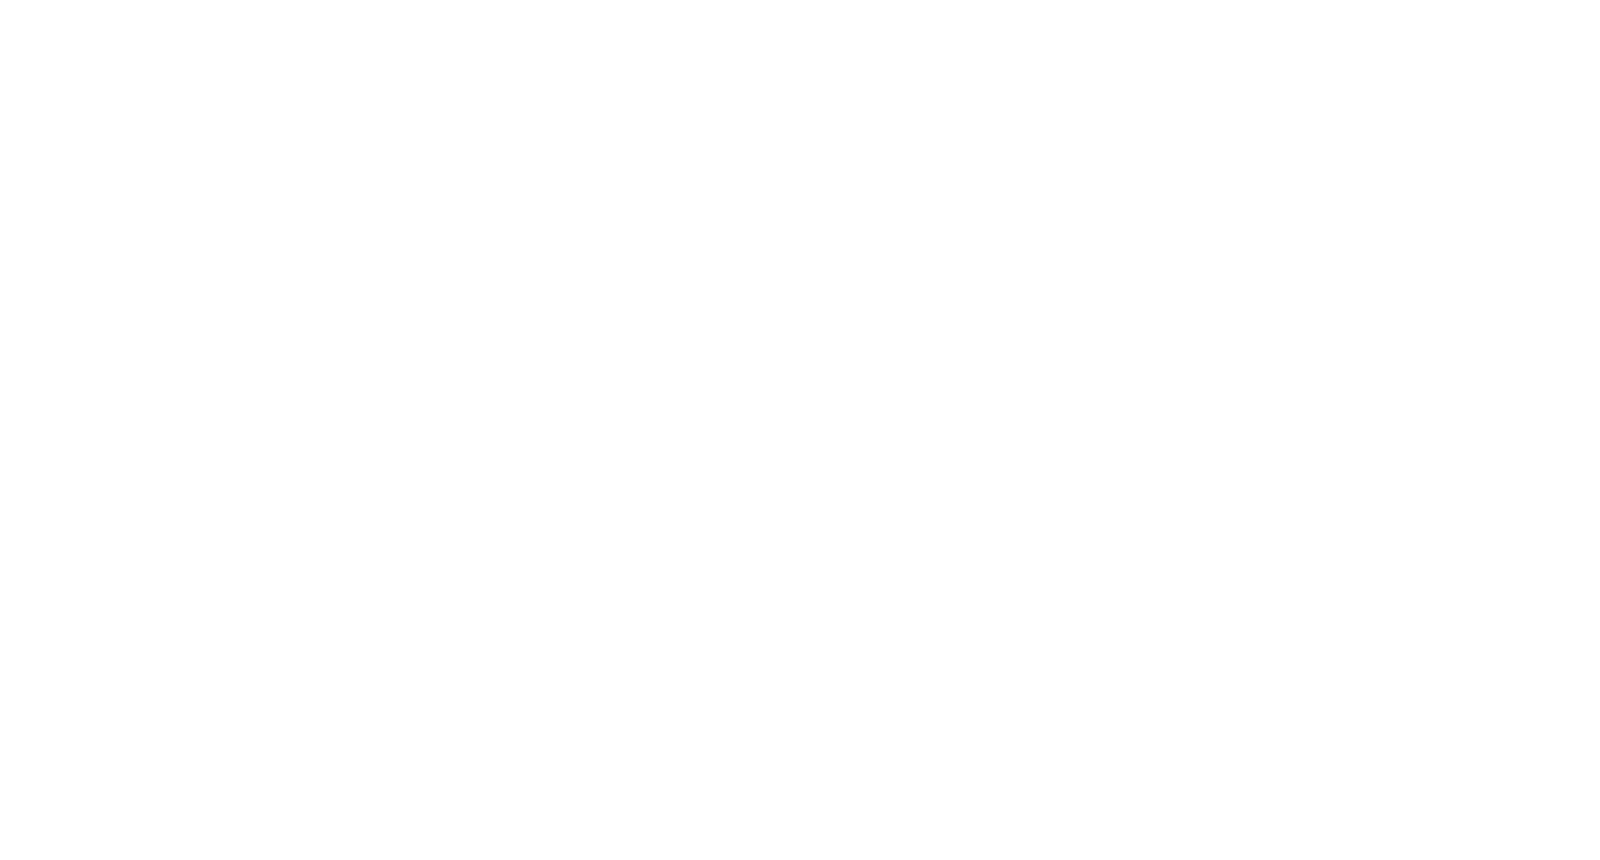 Key Facts - Icon of open book with exclamation point inside comment bubble with white sans-serif type below